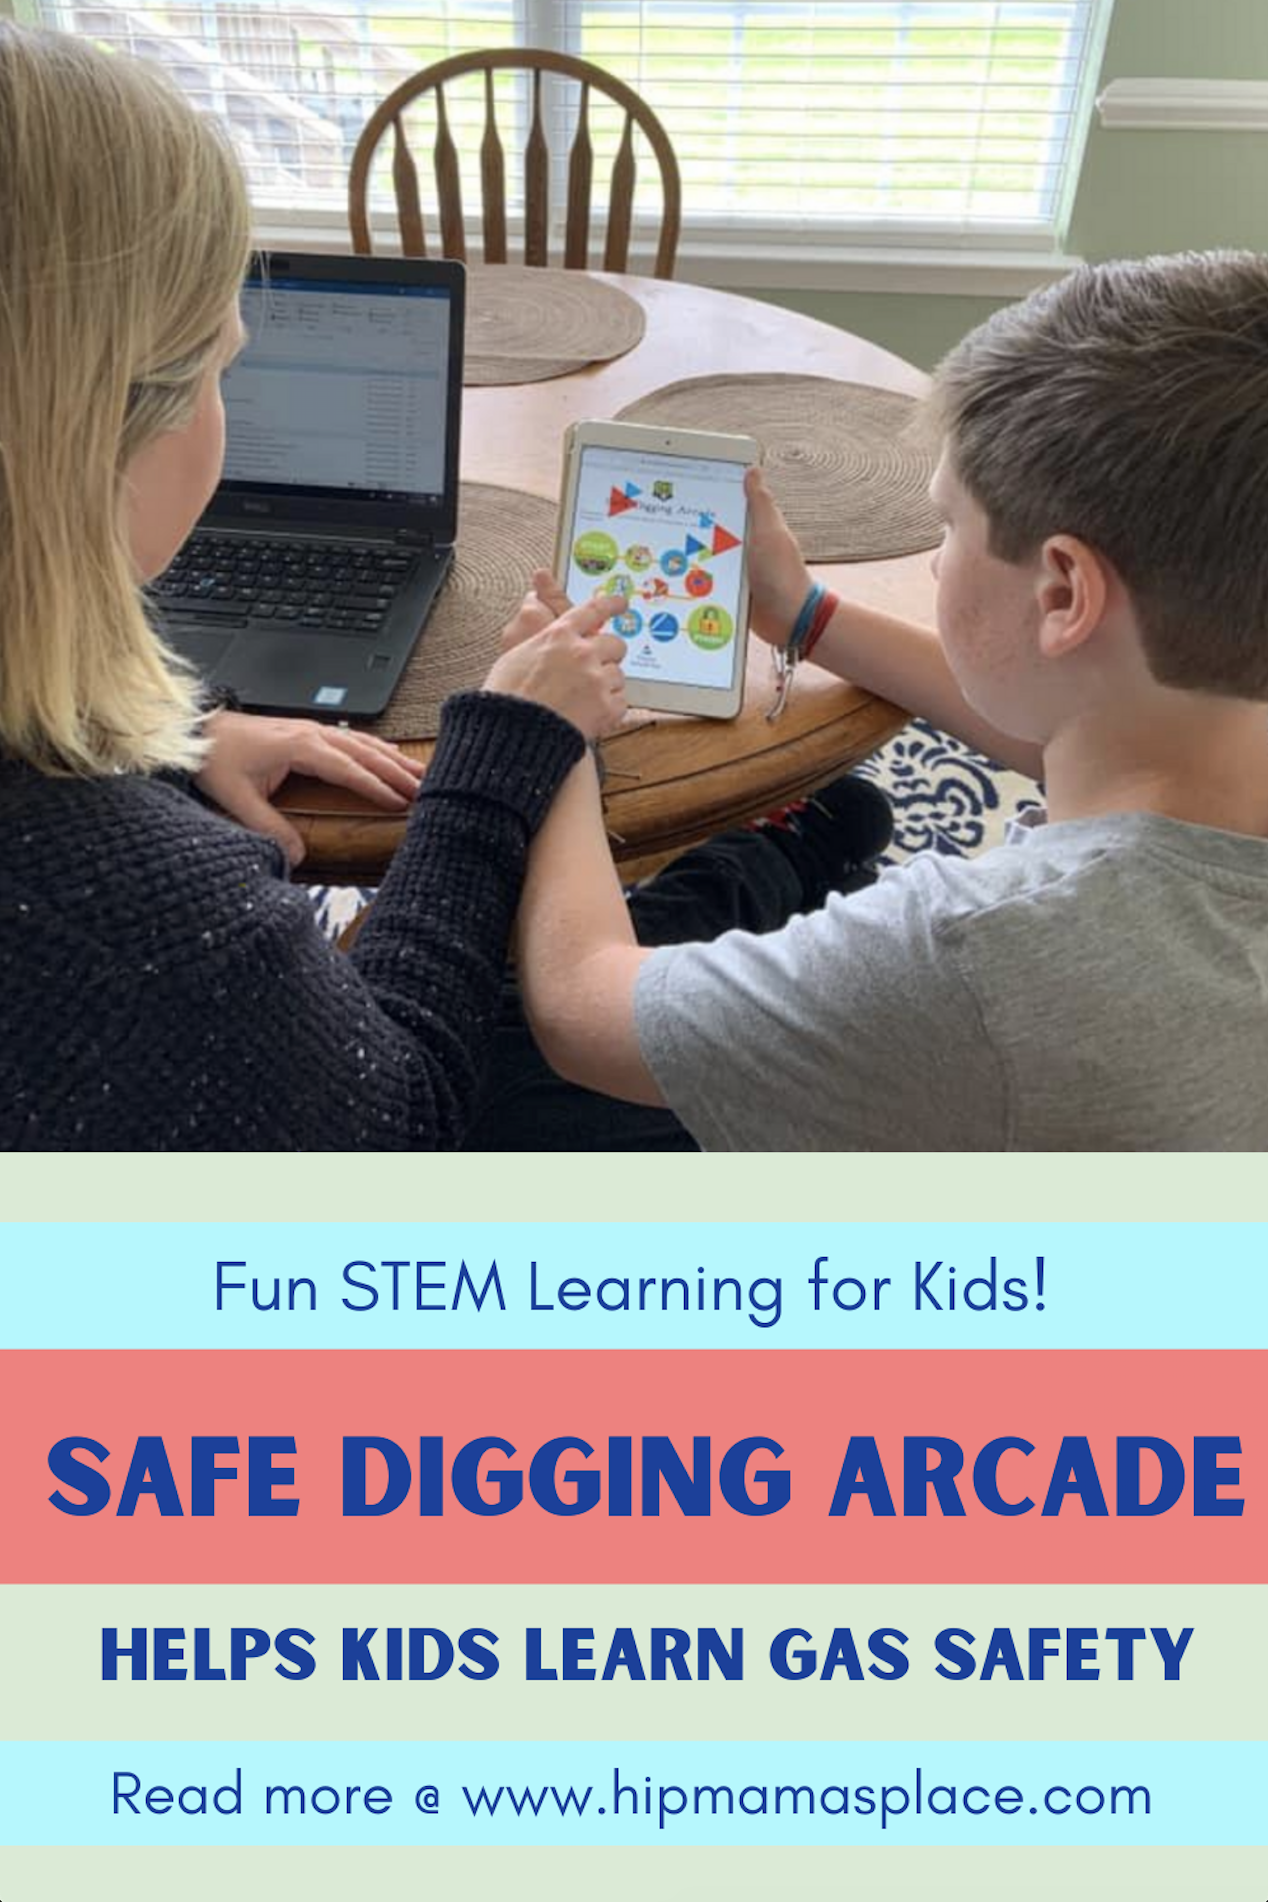 Keep children occupied while homeschooling with the Safe Digging Arcade- a digital learning tool that teaches kids about natural gas safety developed by Virginia Natural Gas and Southern Company Gas. #DigIn #SafeDiggingChampion #SafetyFirst #SafeDigging